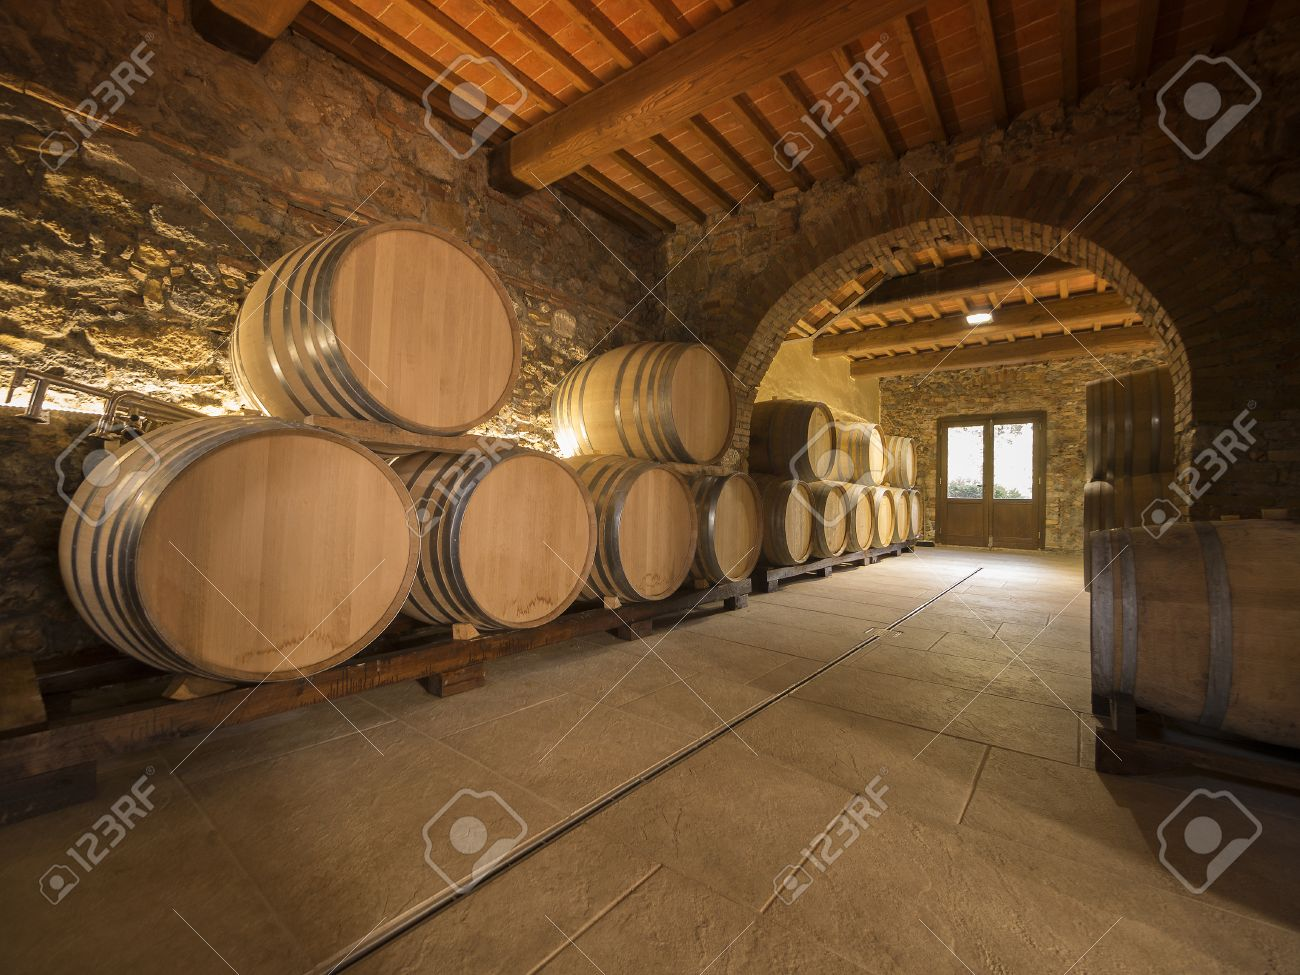 oak wine barrels. Oak Wine Barrels Stacked In A Winery Cellar Stock Photo - 23271395